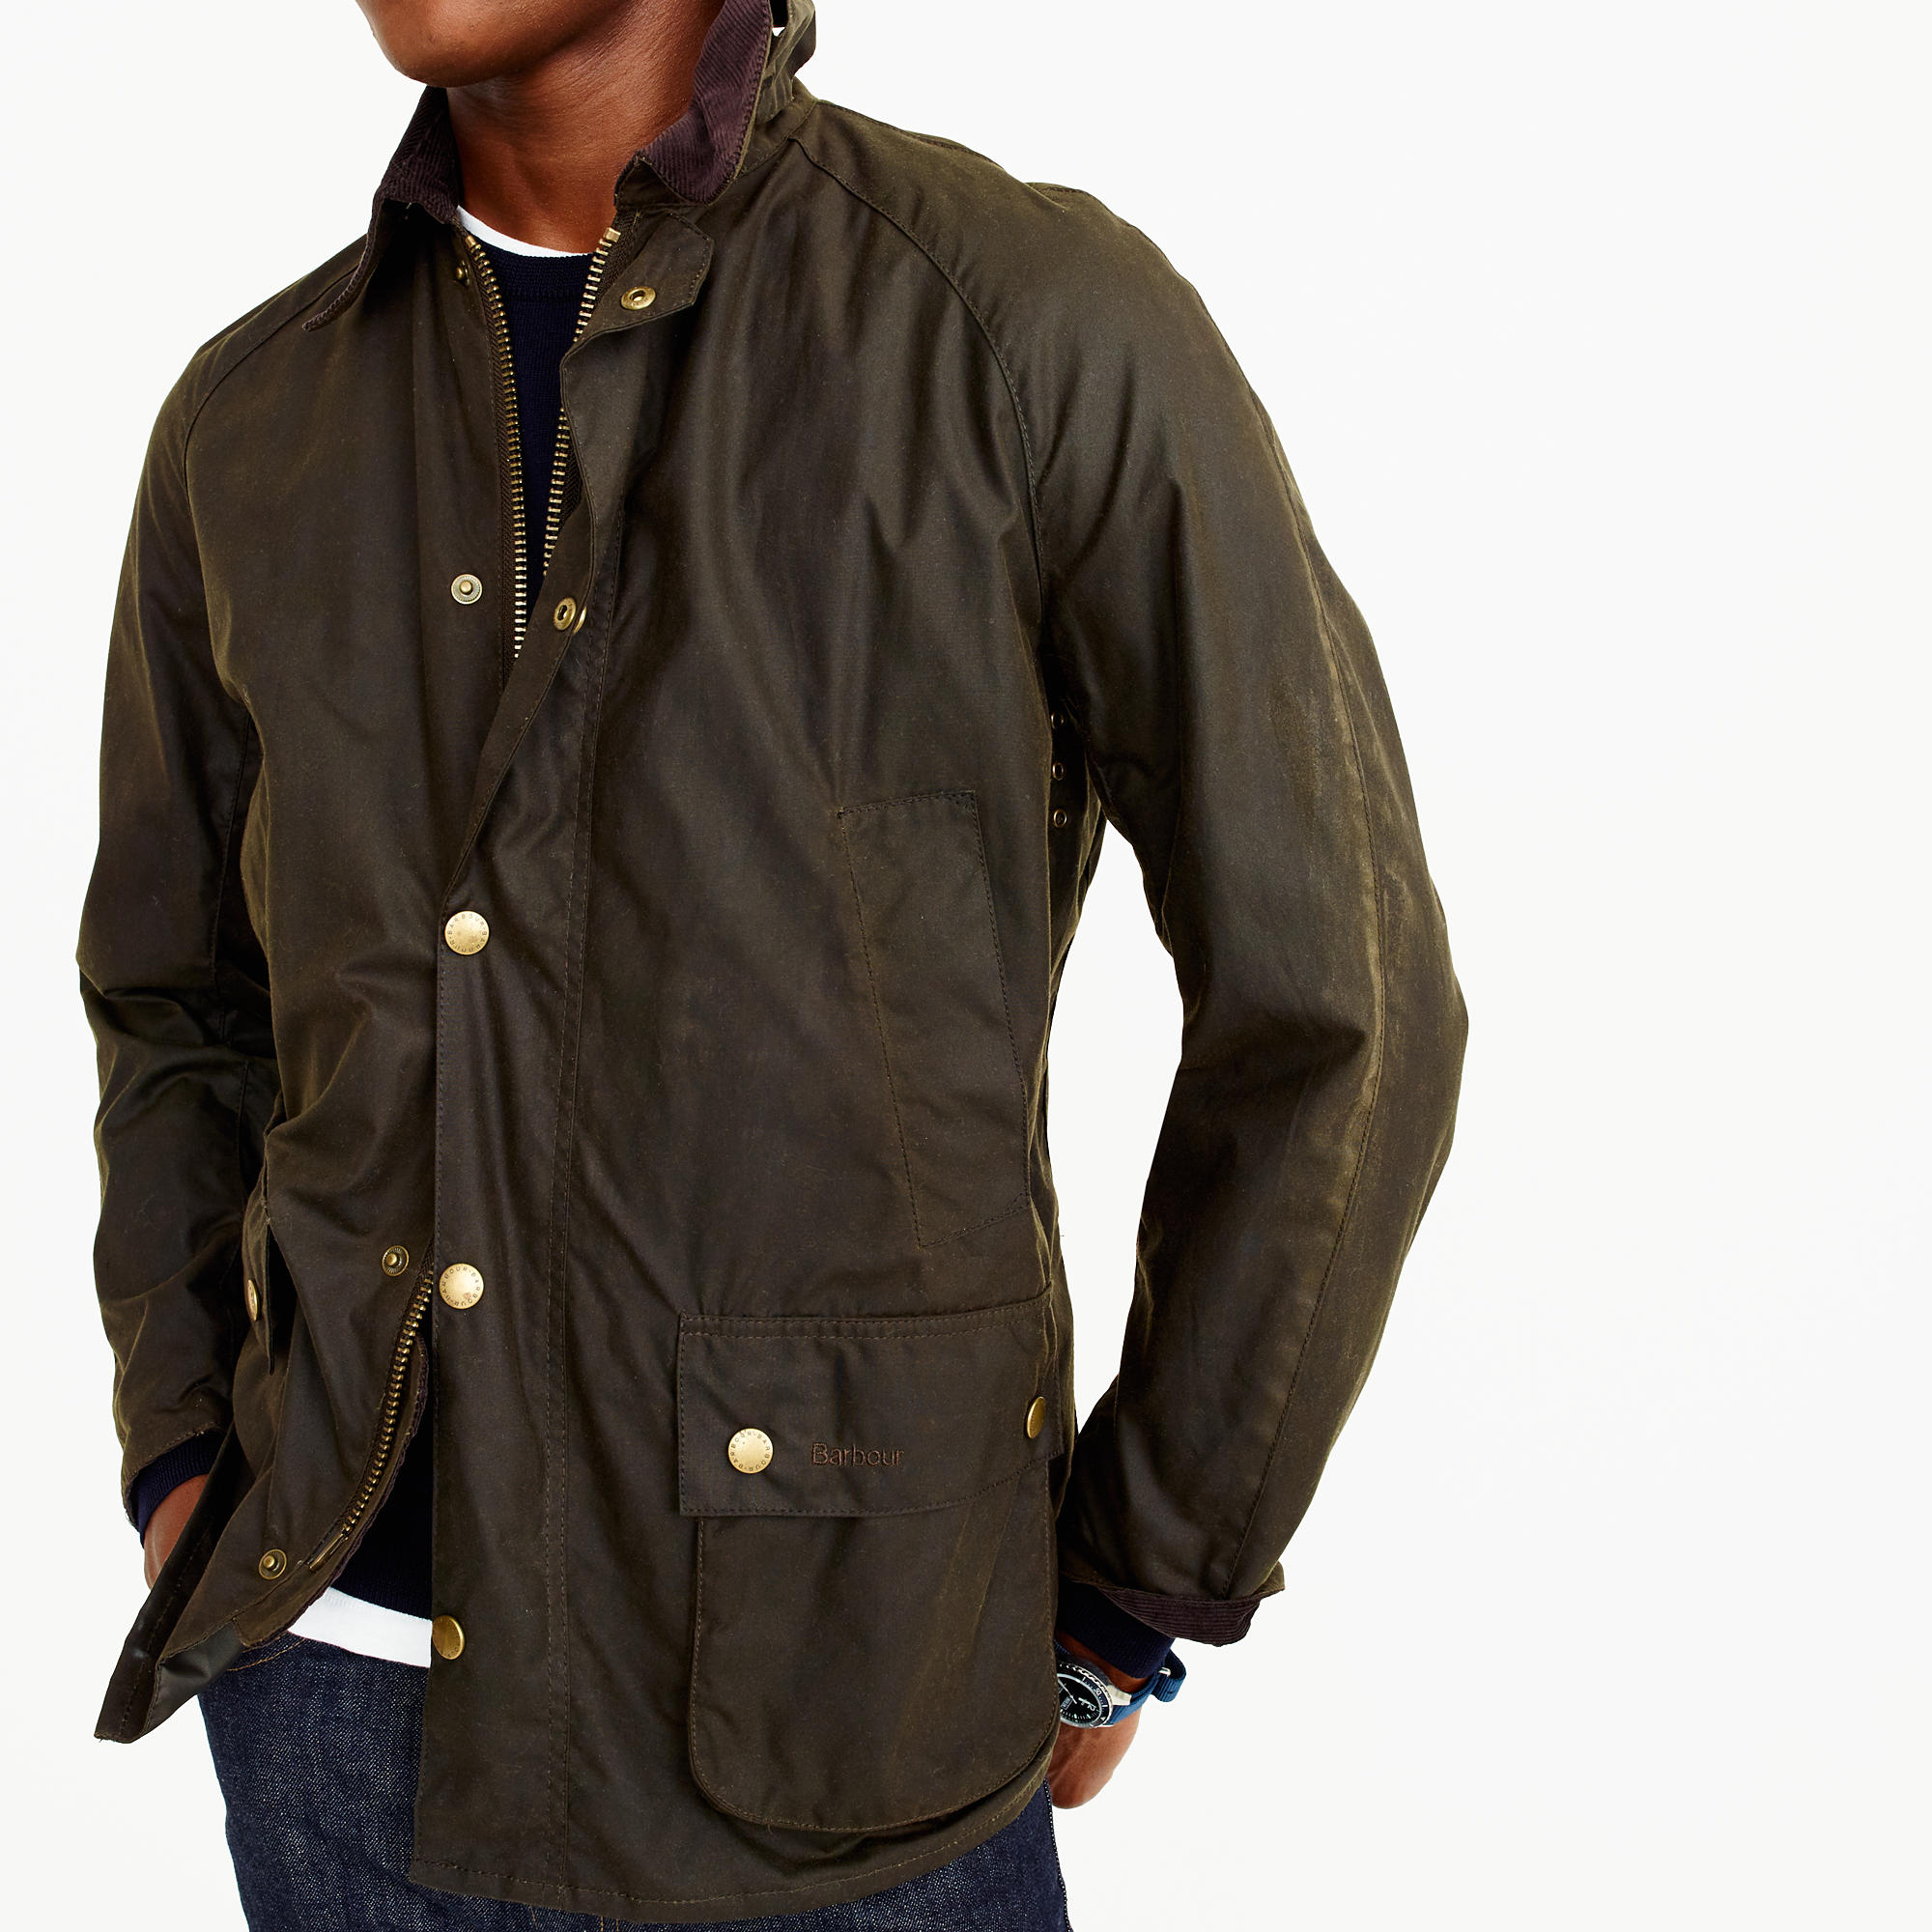 Barbour Jacket : men barbour jacket Special People